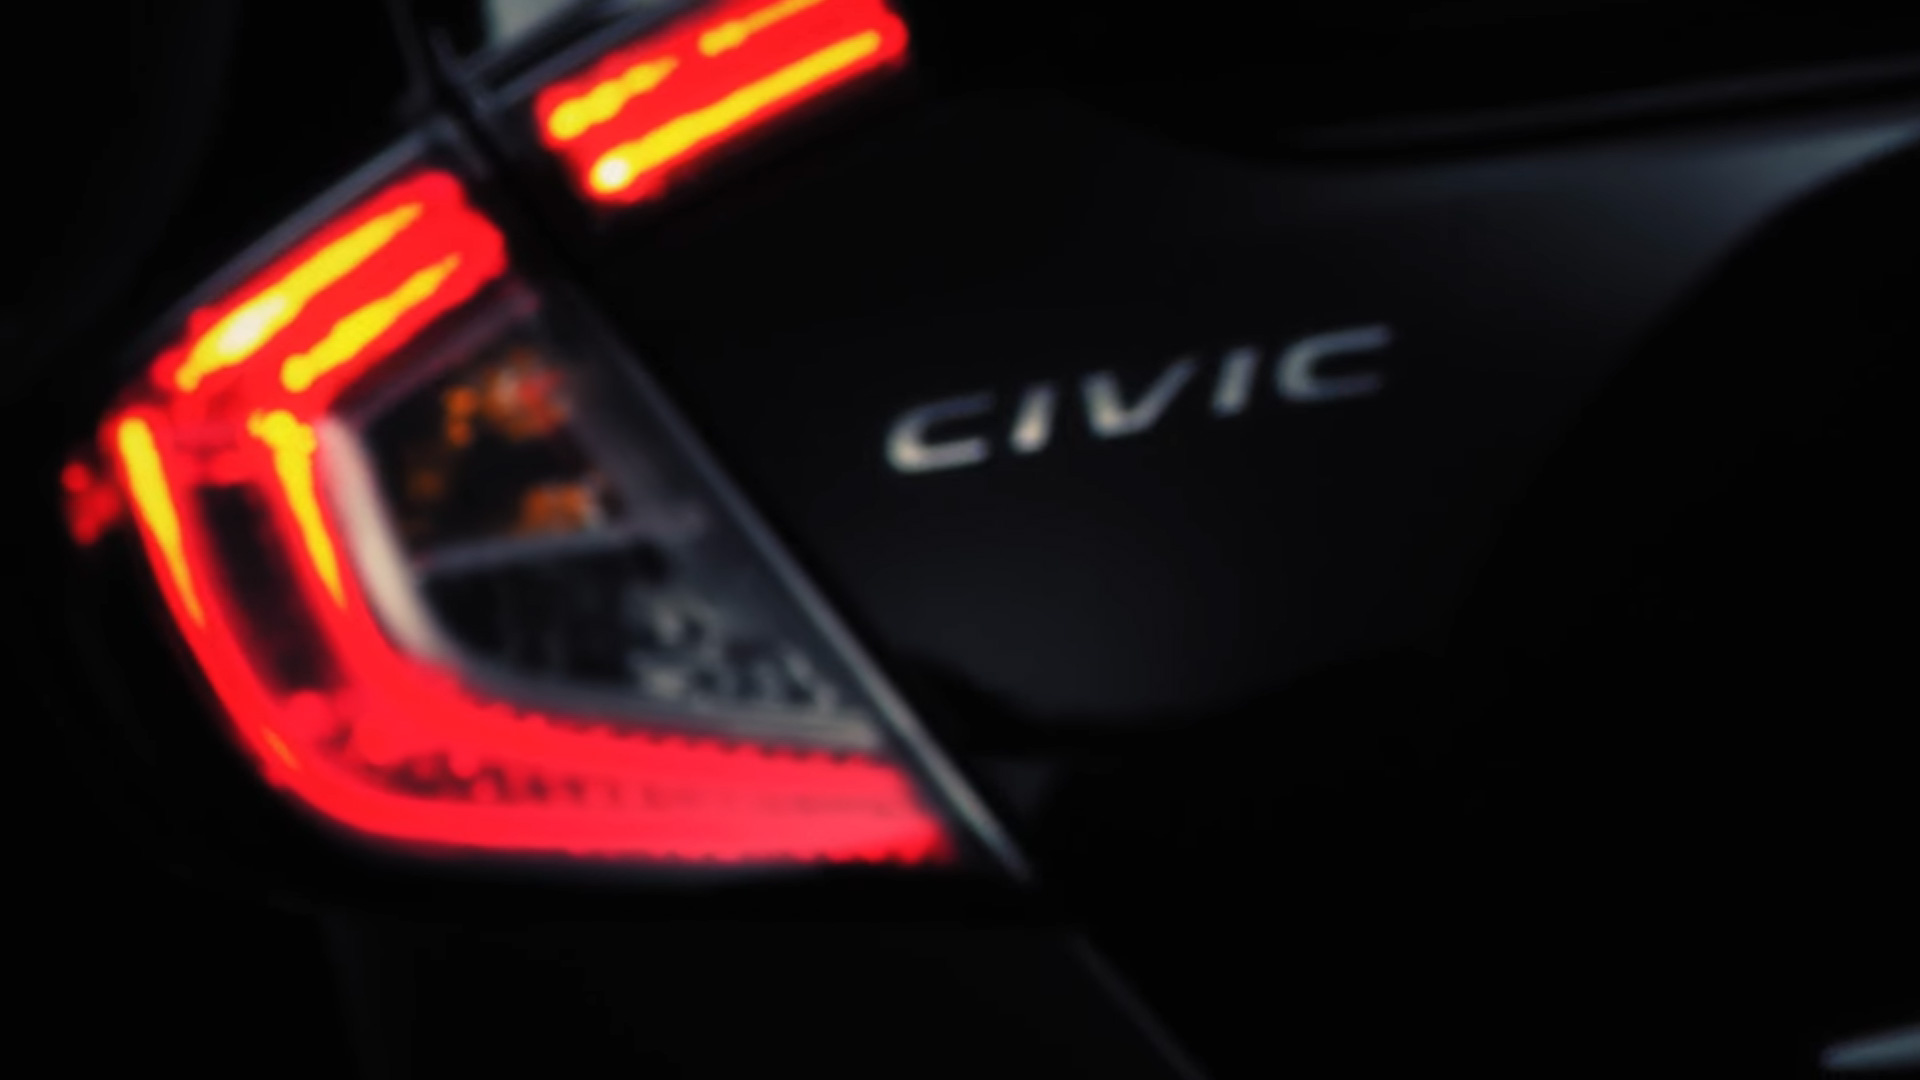 2017 Civic Hatchback Wallpapers X Auto